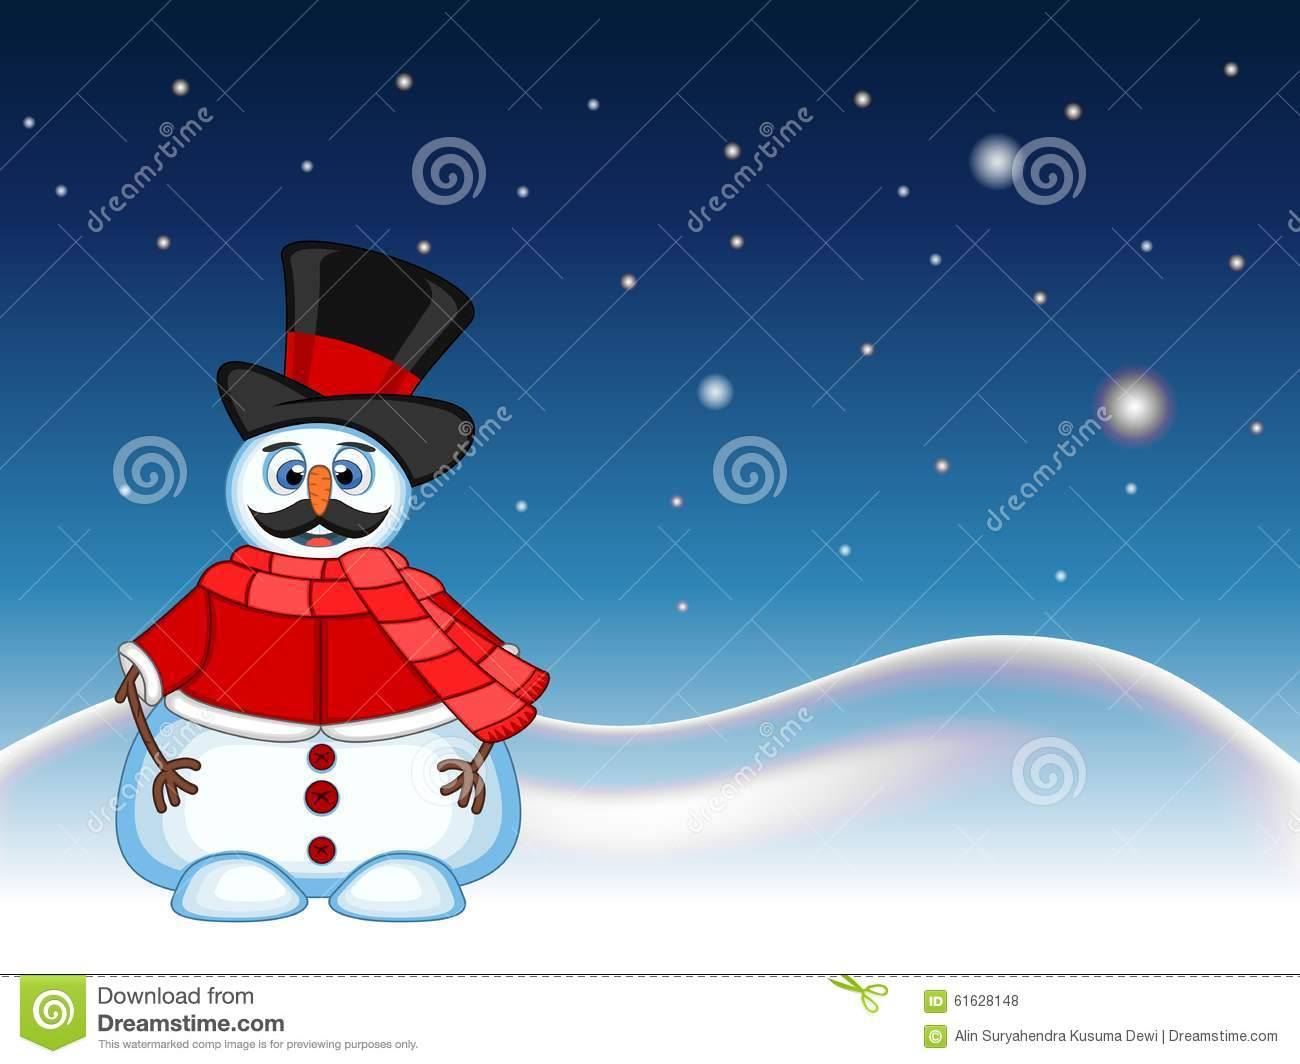 Snowman With Mustache Wearing A Hat, Red Sweater And A Red Scarf ...